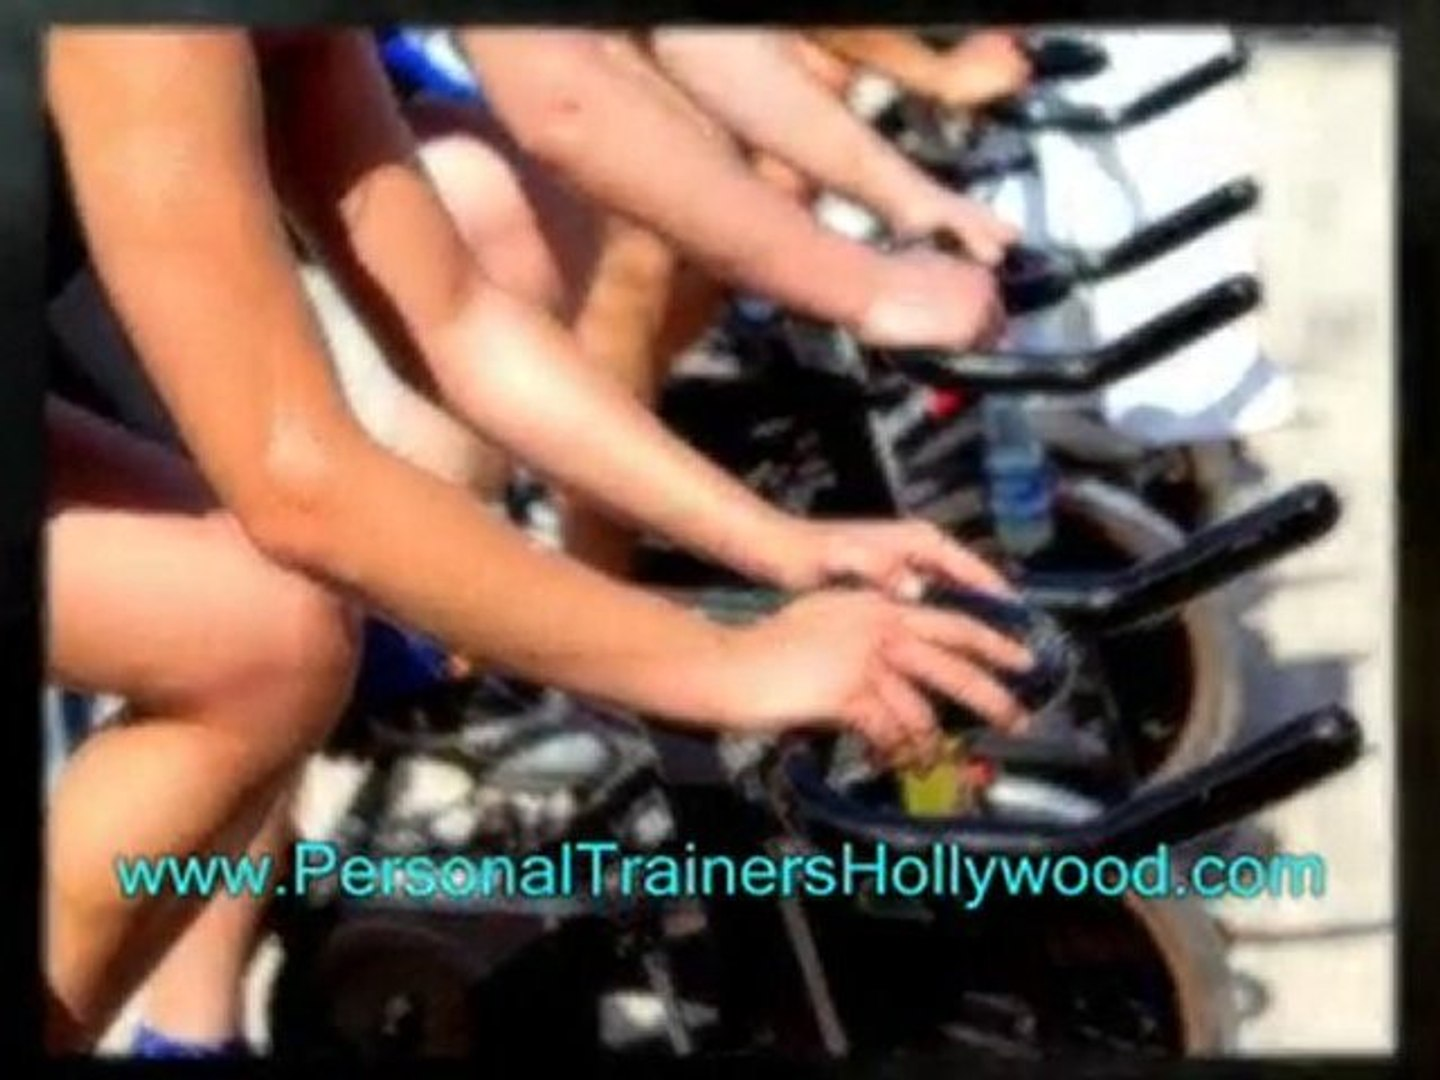 Personal Trainers Hollywood - Personal Trainer in Hollywood